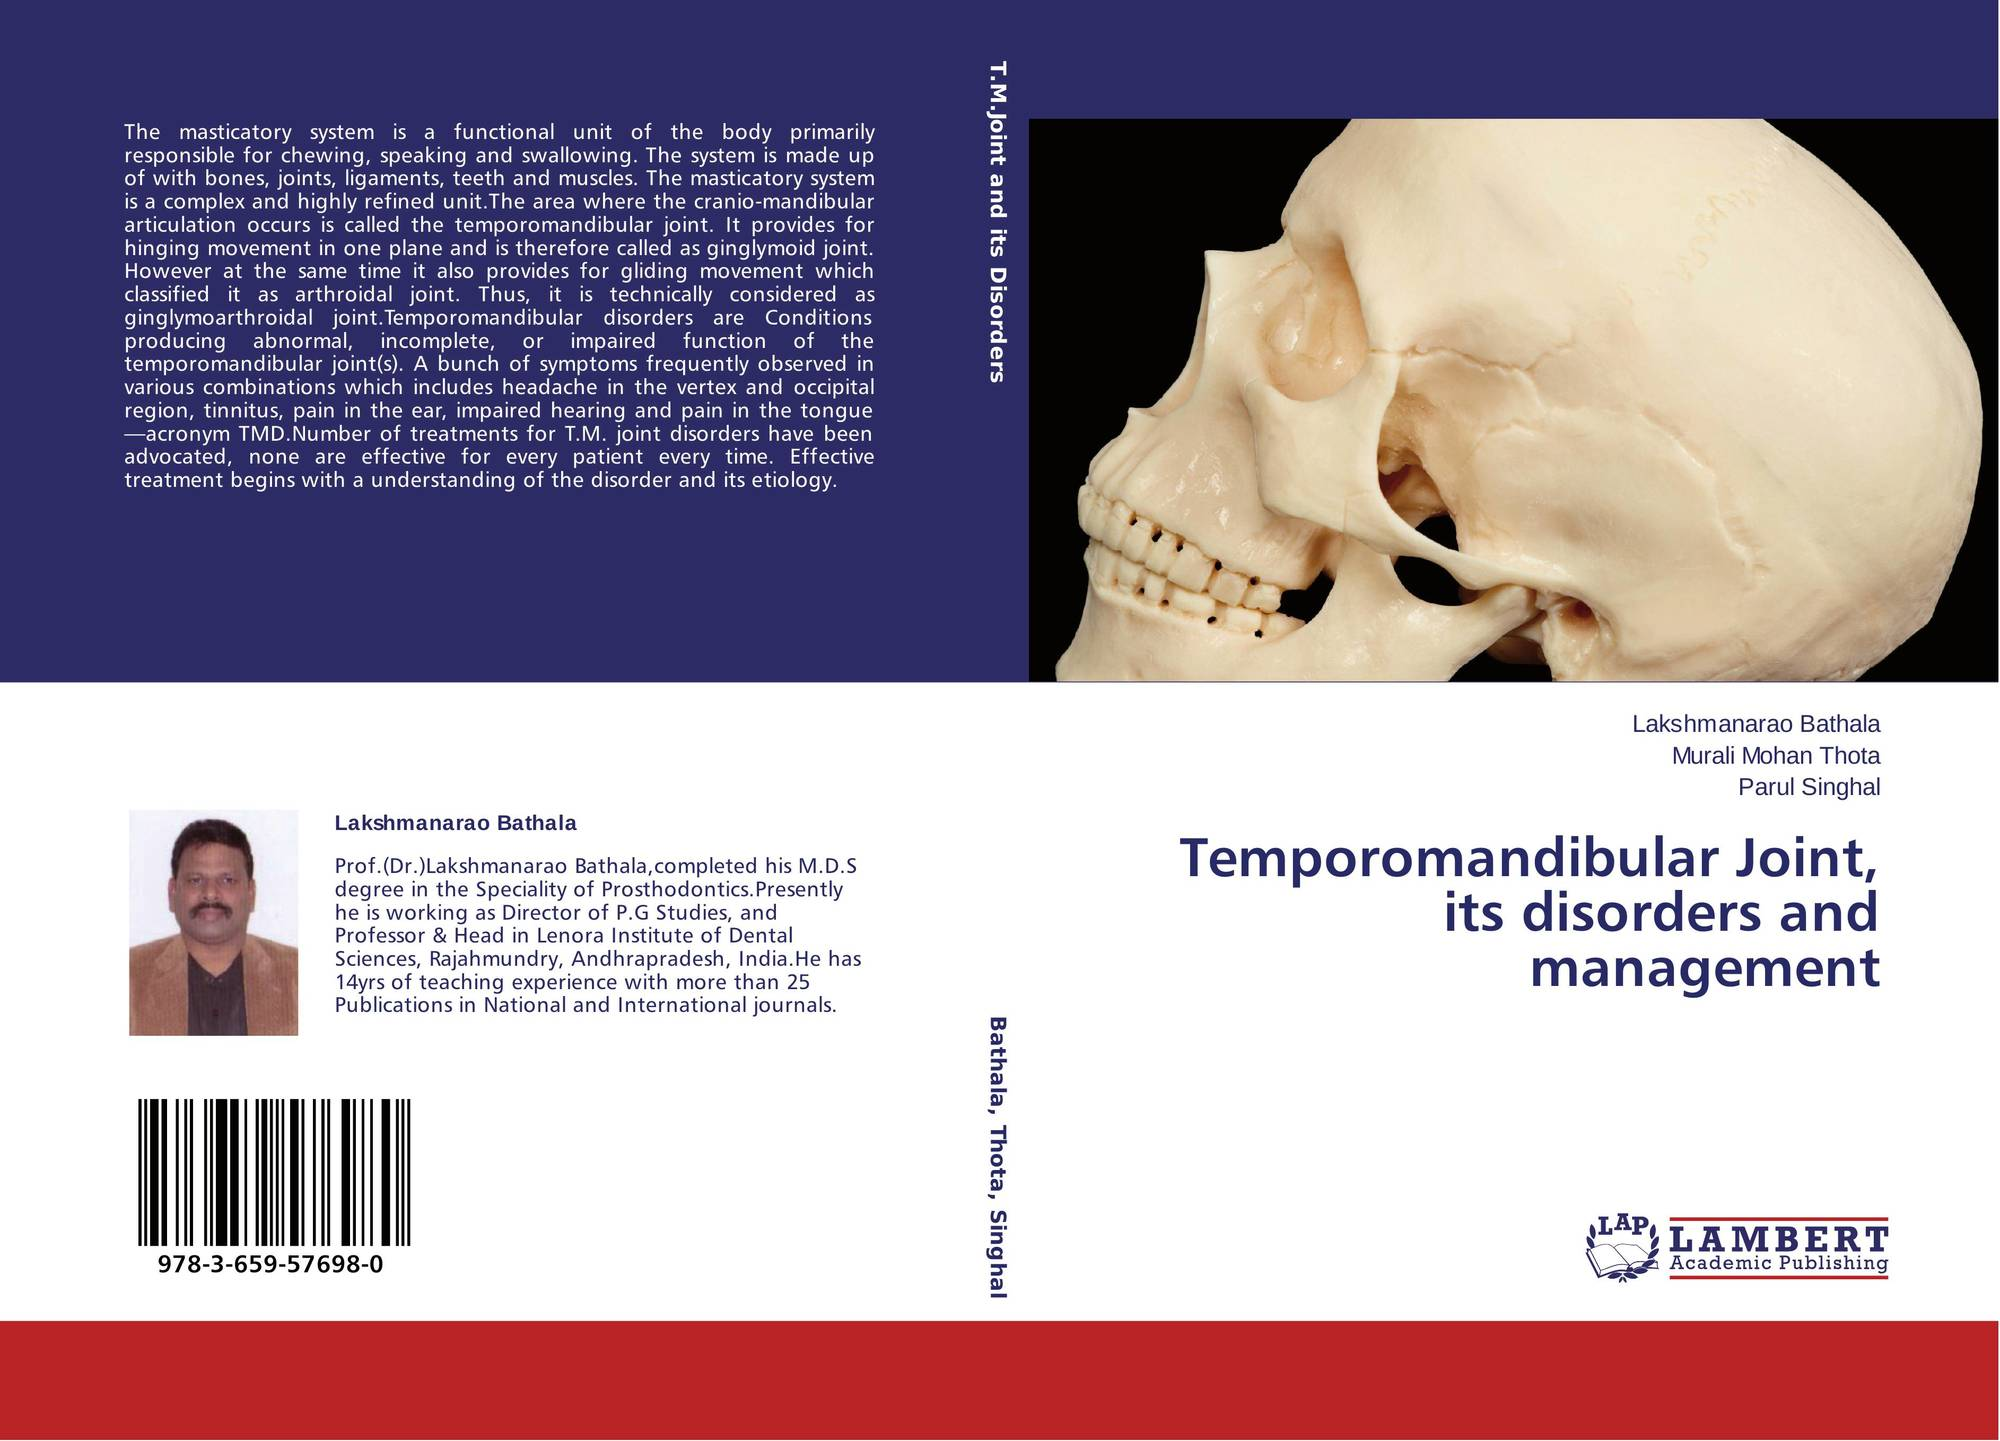 the study of temporomandibular joint and its function Joint function, (3) preventing further joint damage, and (4)  temporomandibular joint (tmj) disorders were recognized in the early dental (gysi, 1921) and medical (costen, 1997  to loading therefore, the study by brehnan et al (1981), in which condylar loading in the macaque was measured.